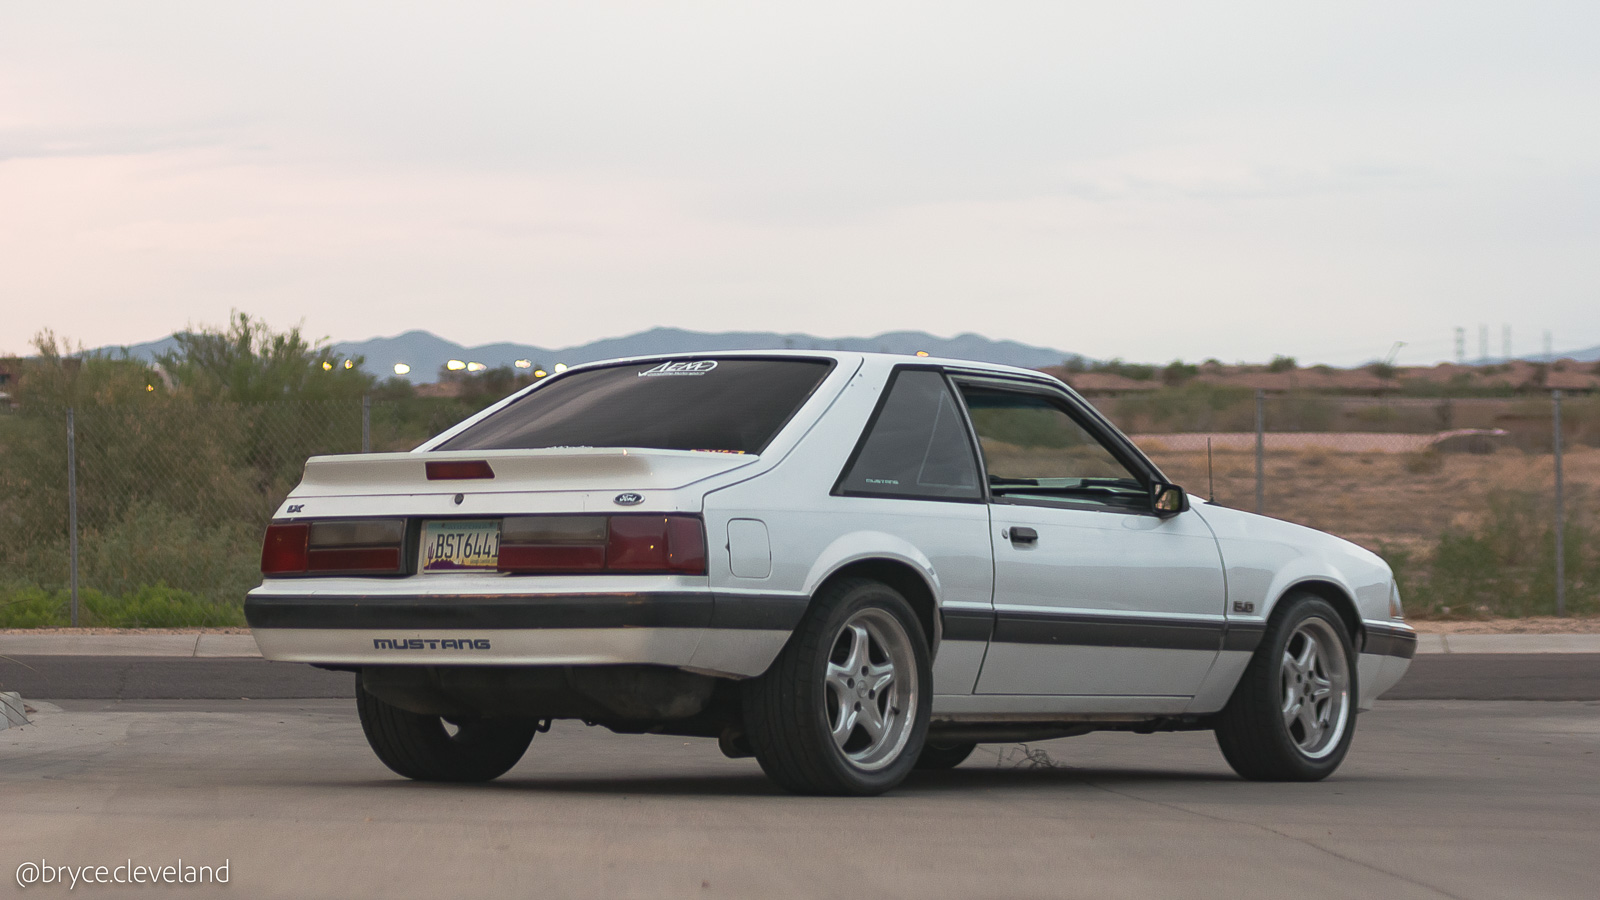 hight resolution of whether you love or hate the style of the fox body you ll probably agree that it s interesting but it doesn t really resemble mustangs of the past